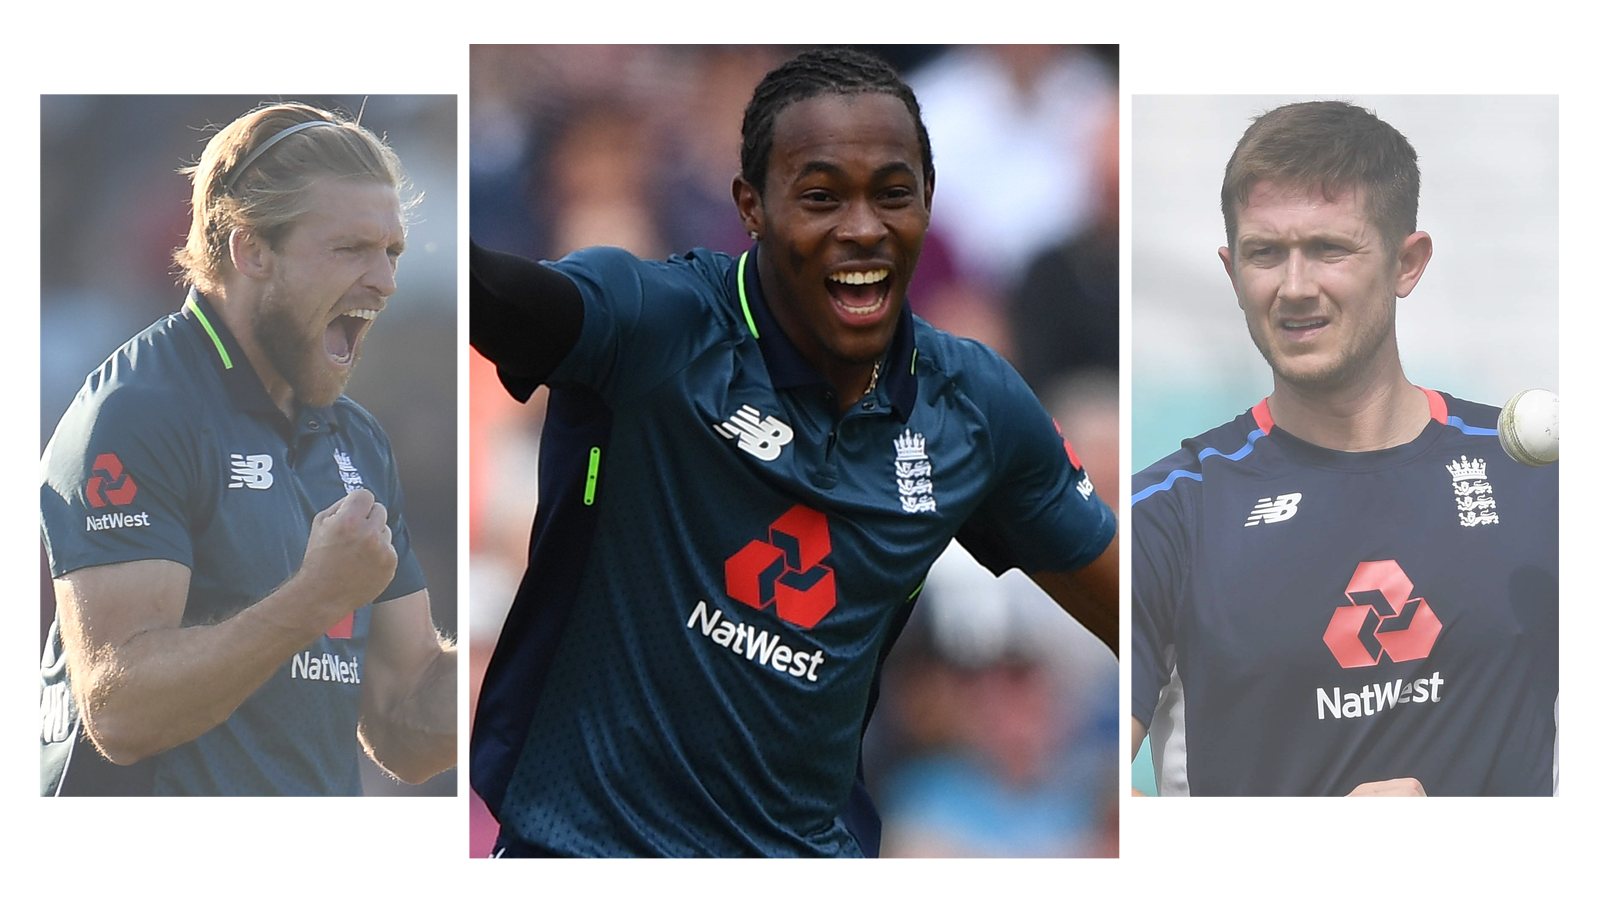 England selectors face 'worst' phone call they've ever had over World Cup squad - Vaughan